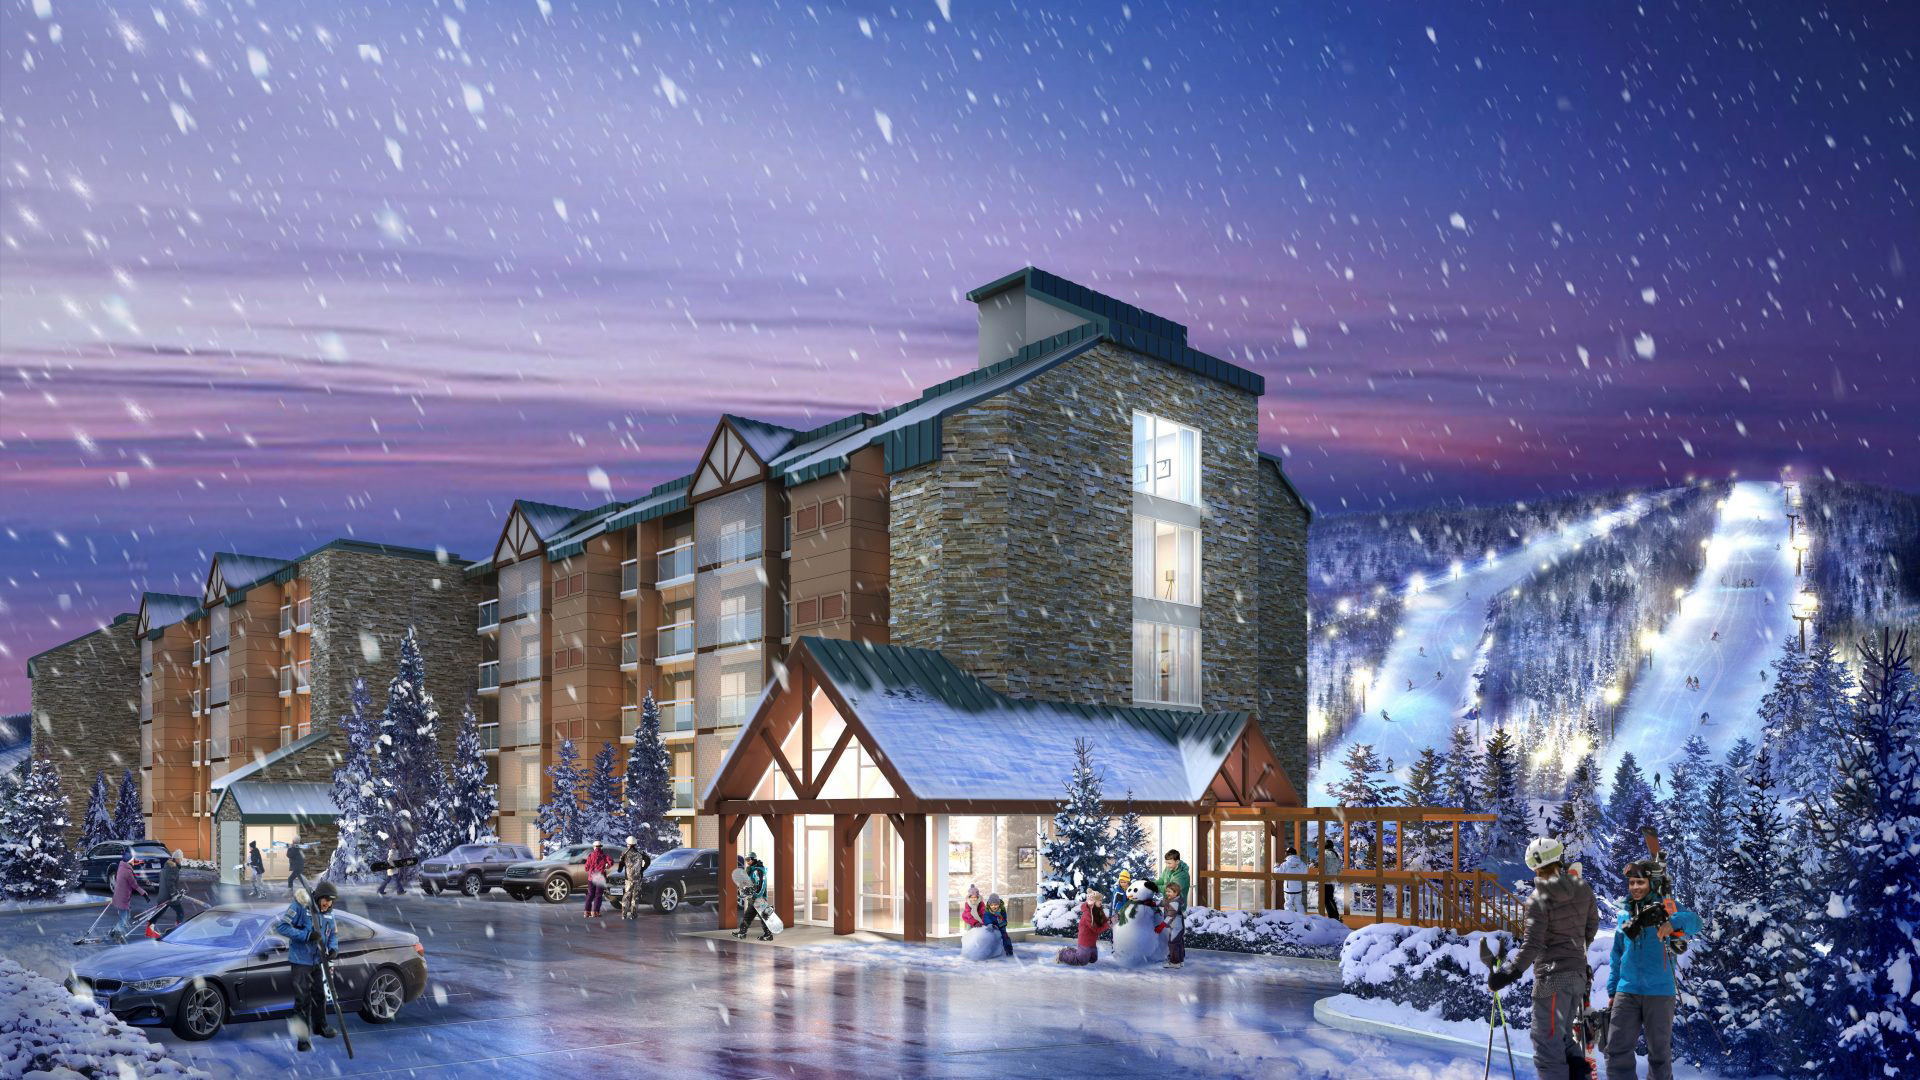 2010's Horseshoe Resort Residences Image to show History